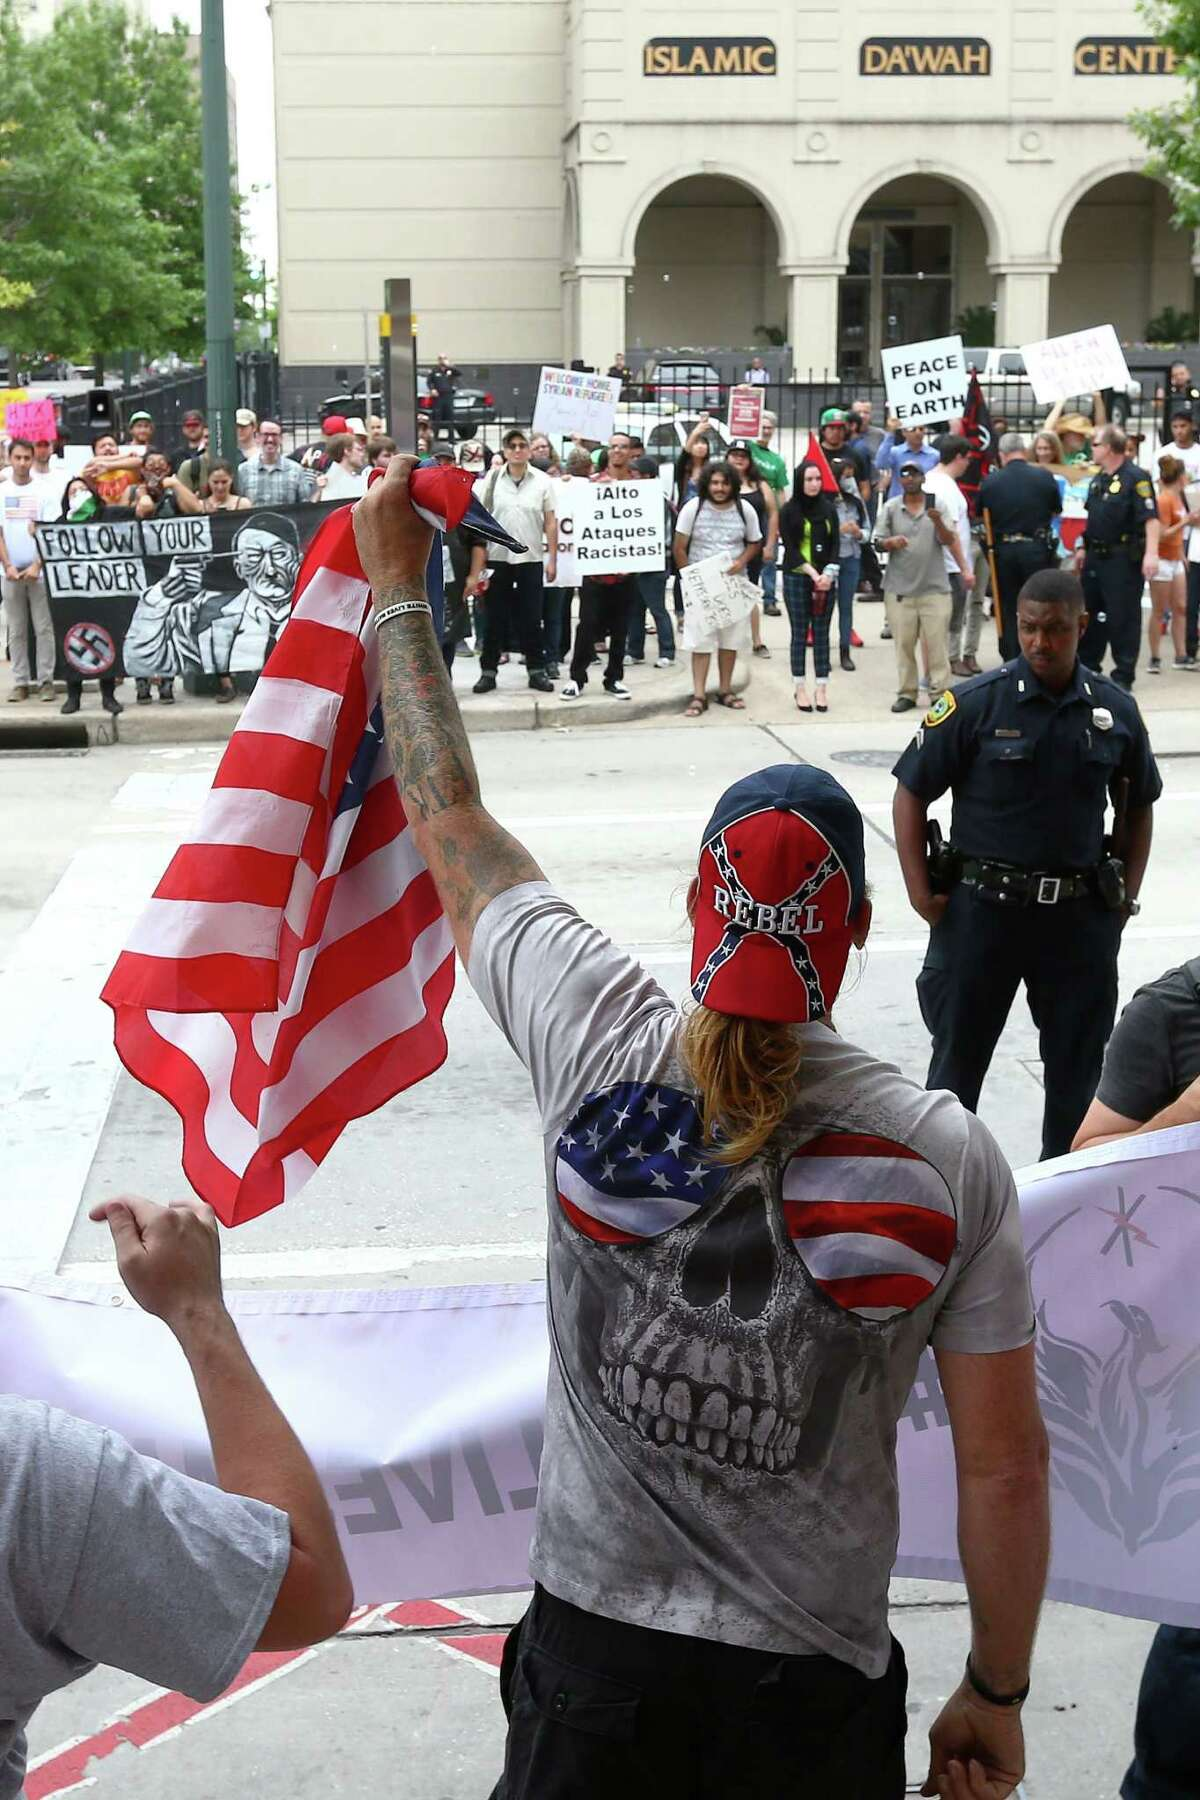 """""""Show me your patriotism,"""" a protester who referred to himself as """"Doug,"""" center, yells at counter-protesters at the Islamic Da'Wah Center, Saturday, May 21, in Houston. """"Equality and social justice aren't necessarily a bad thing, but they don't have the interests of the Houston community in mind,"""" he said. """"This is the U.S., not Saudi Arabia. This doesn't have anything to do with Texas social justice."""" ( Jon Shapley / Houston Chronicle )"""